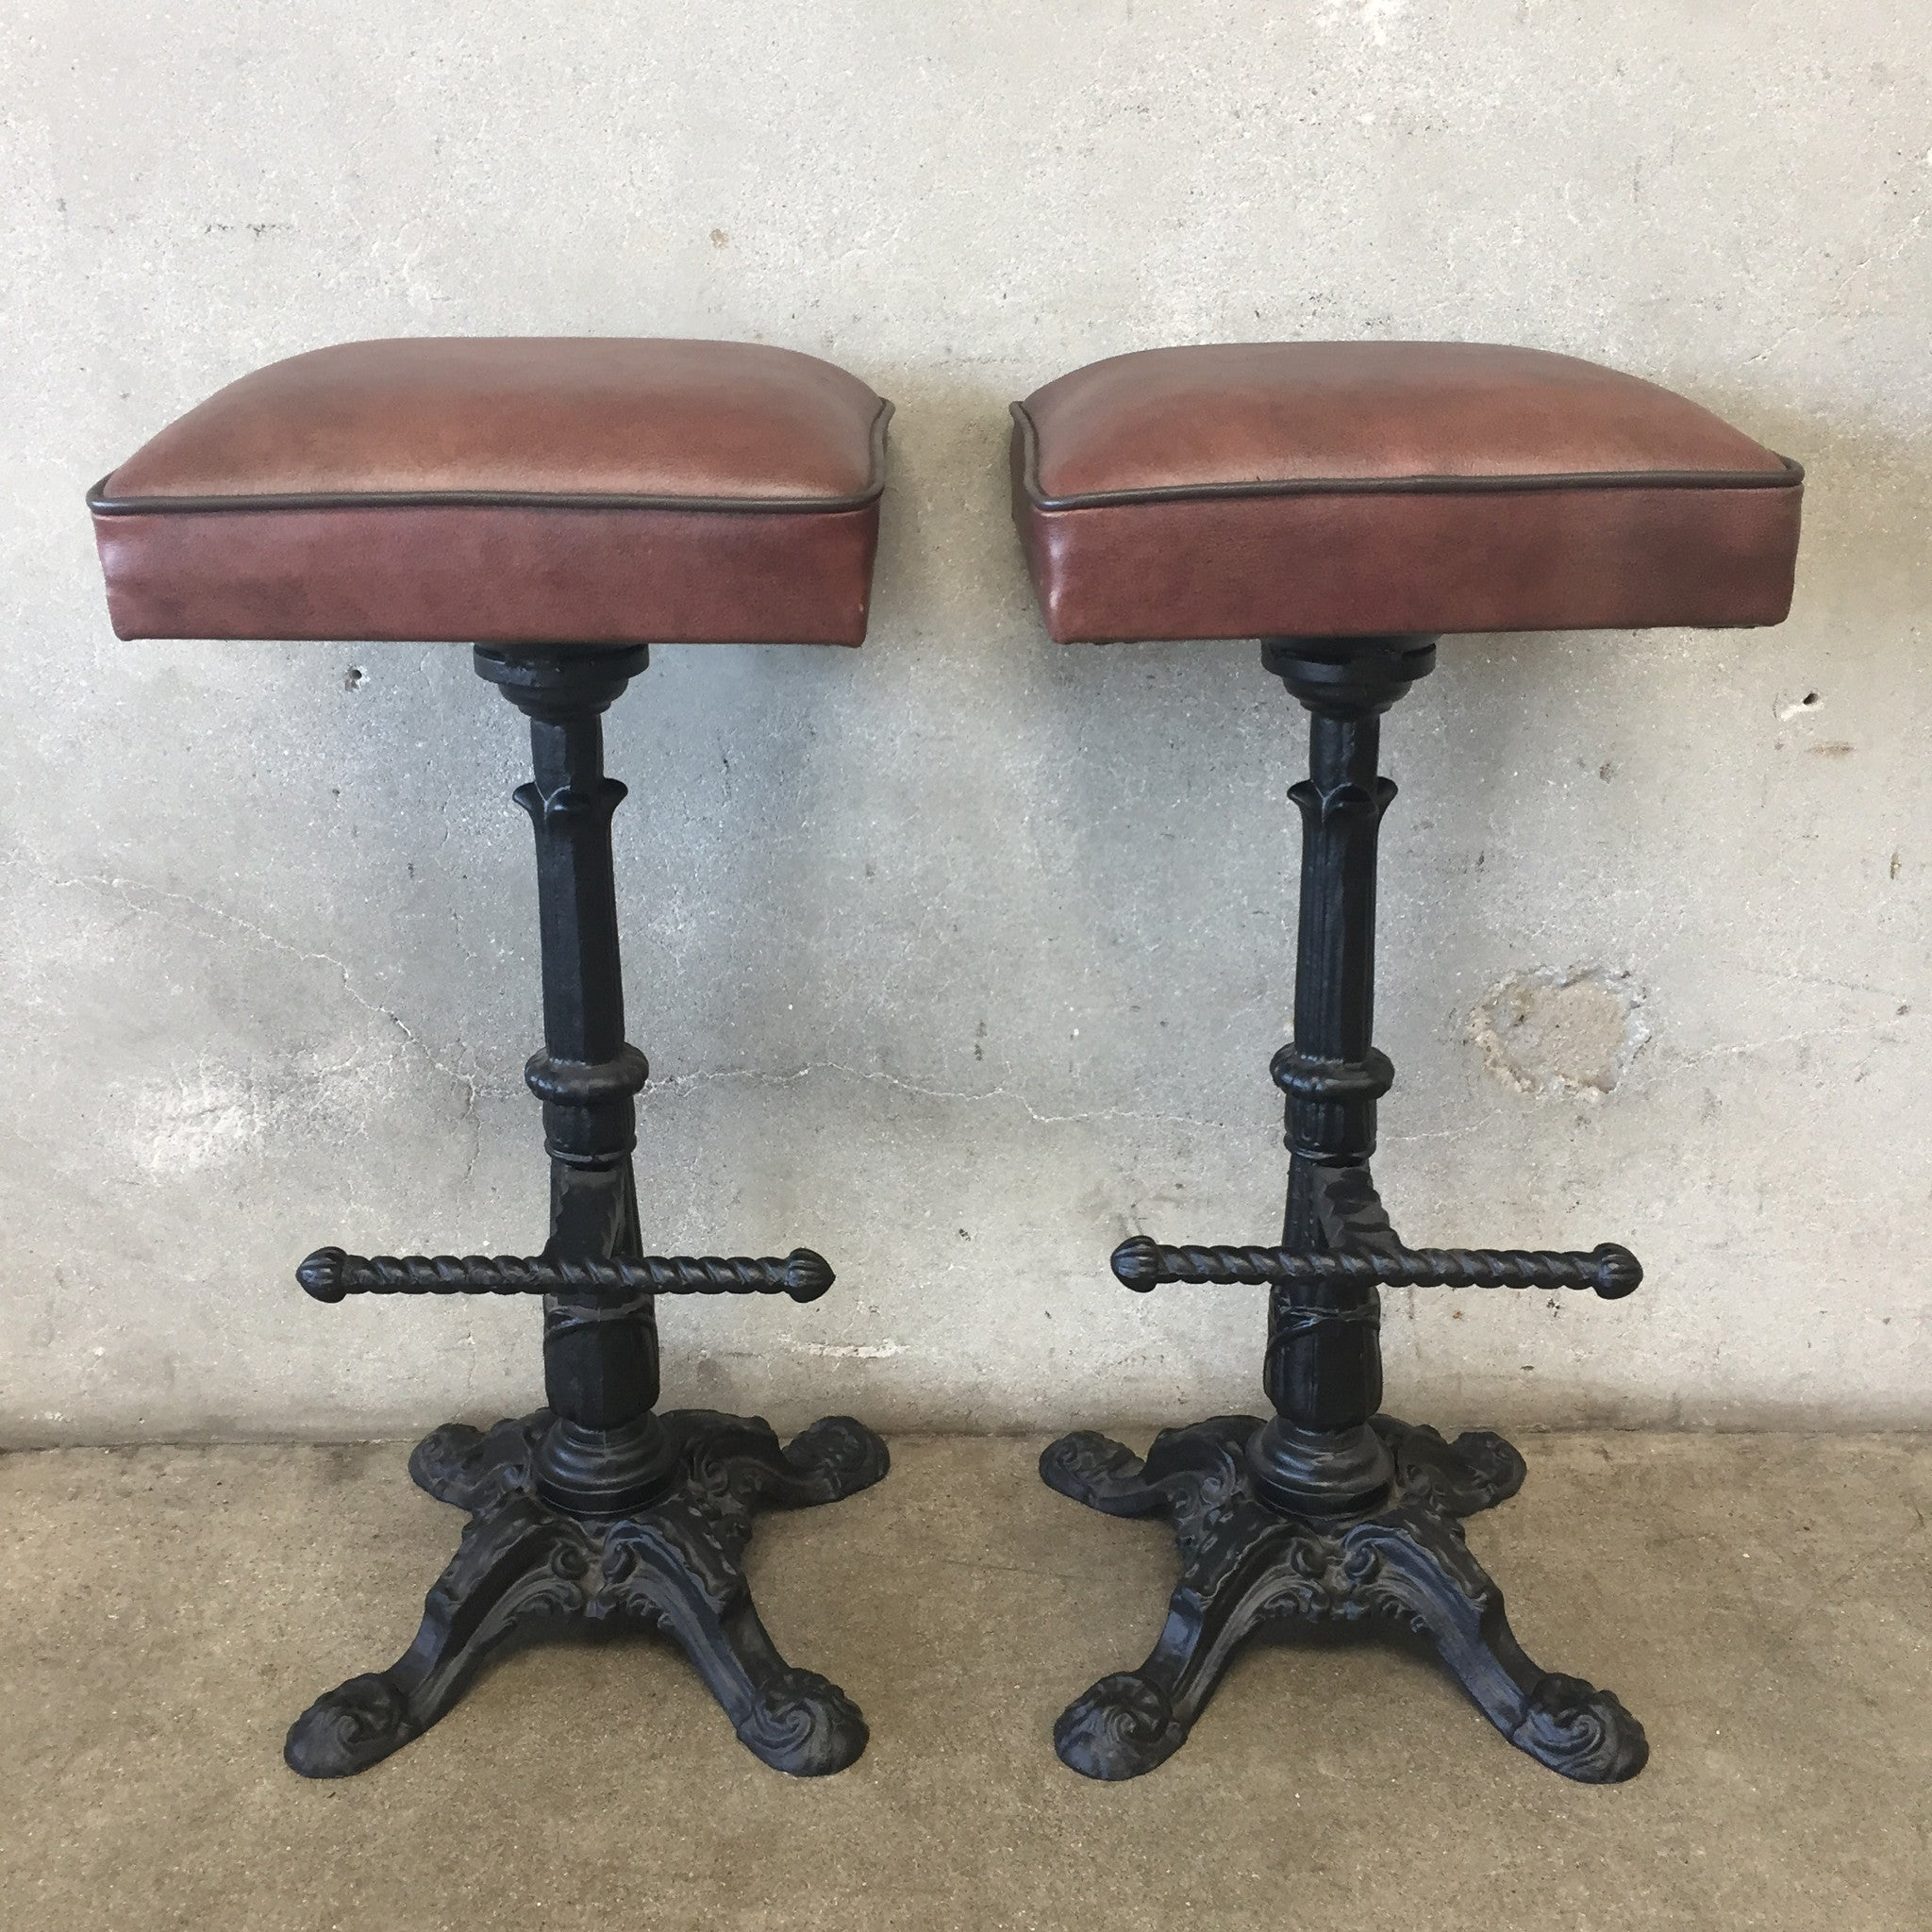 Pair of antique cast iron bar stools